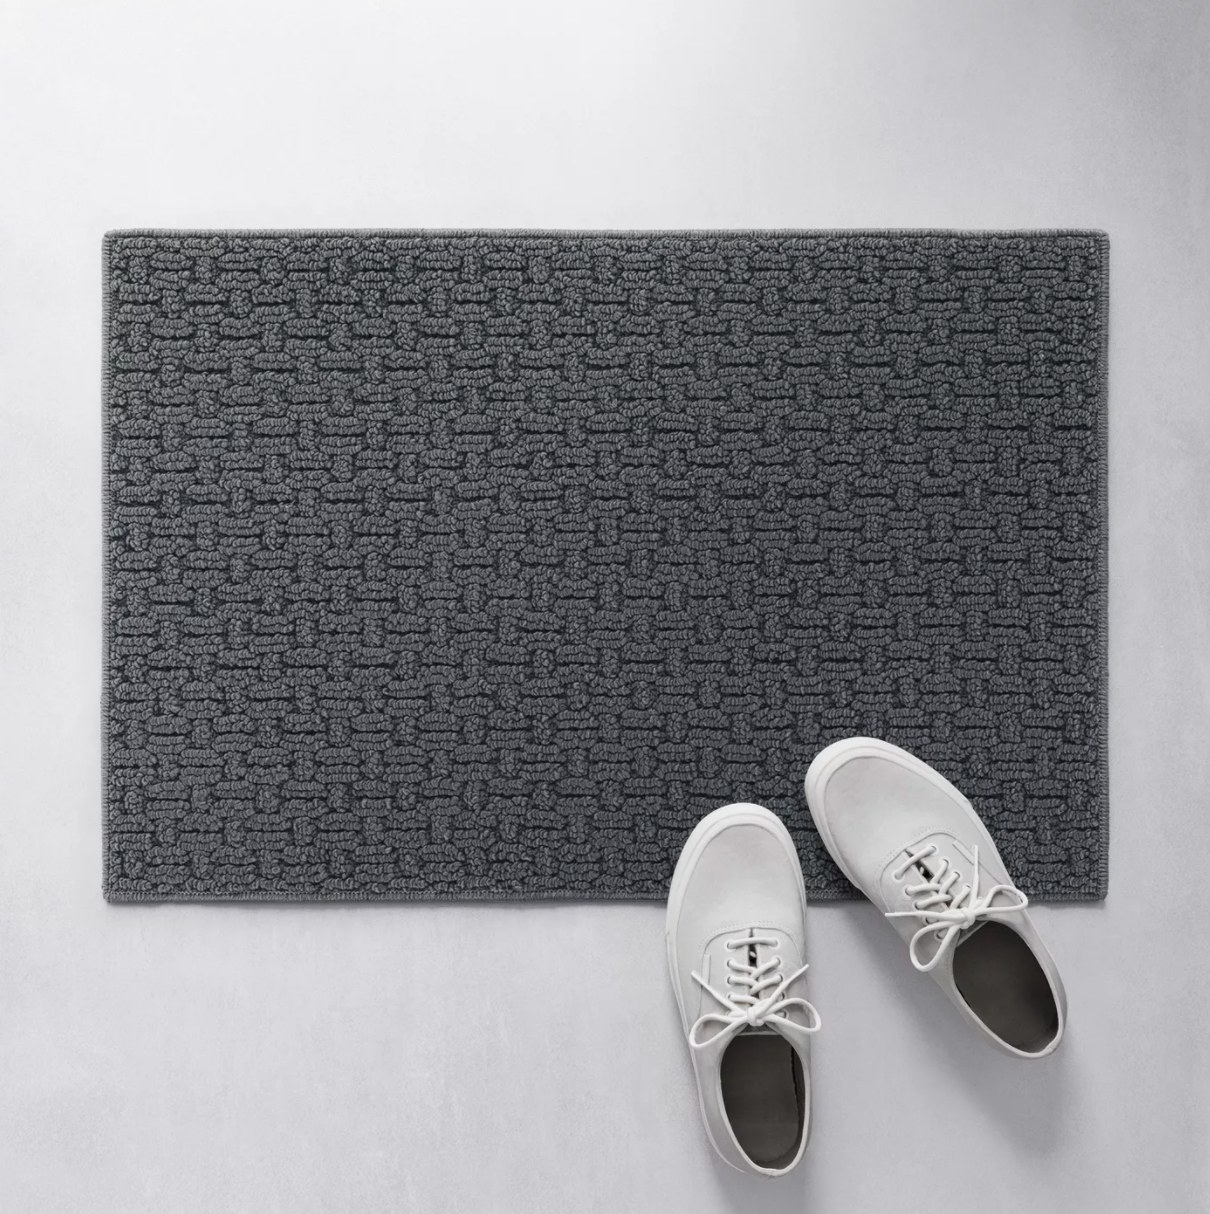 The washable rug in gray